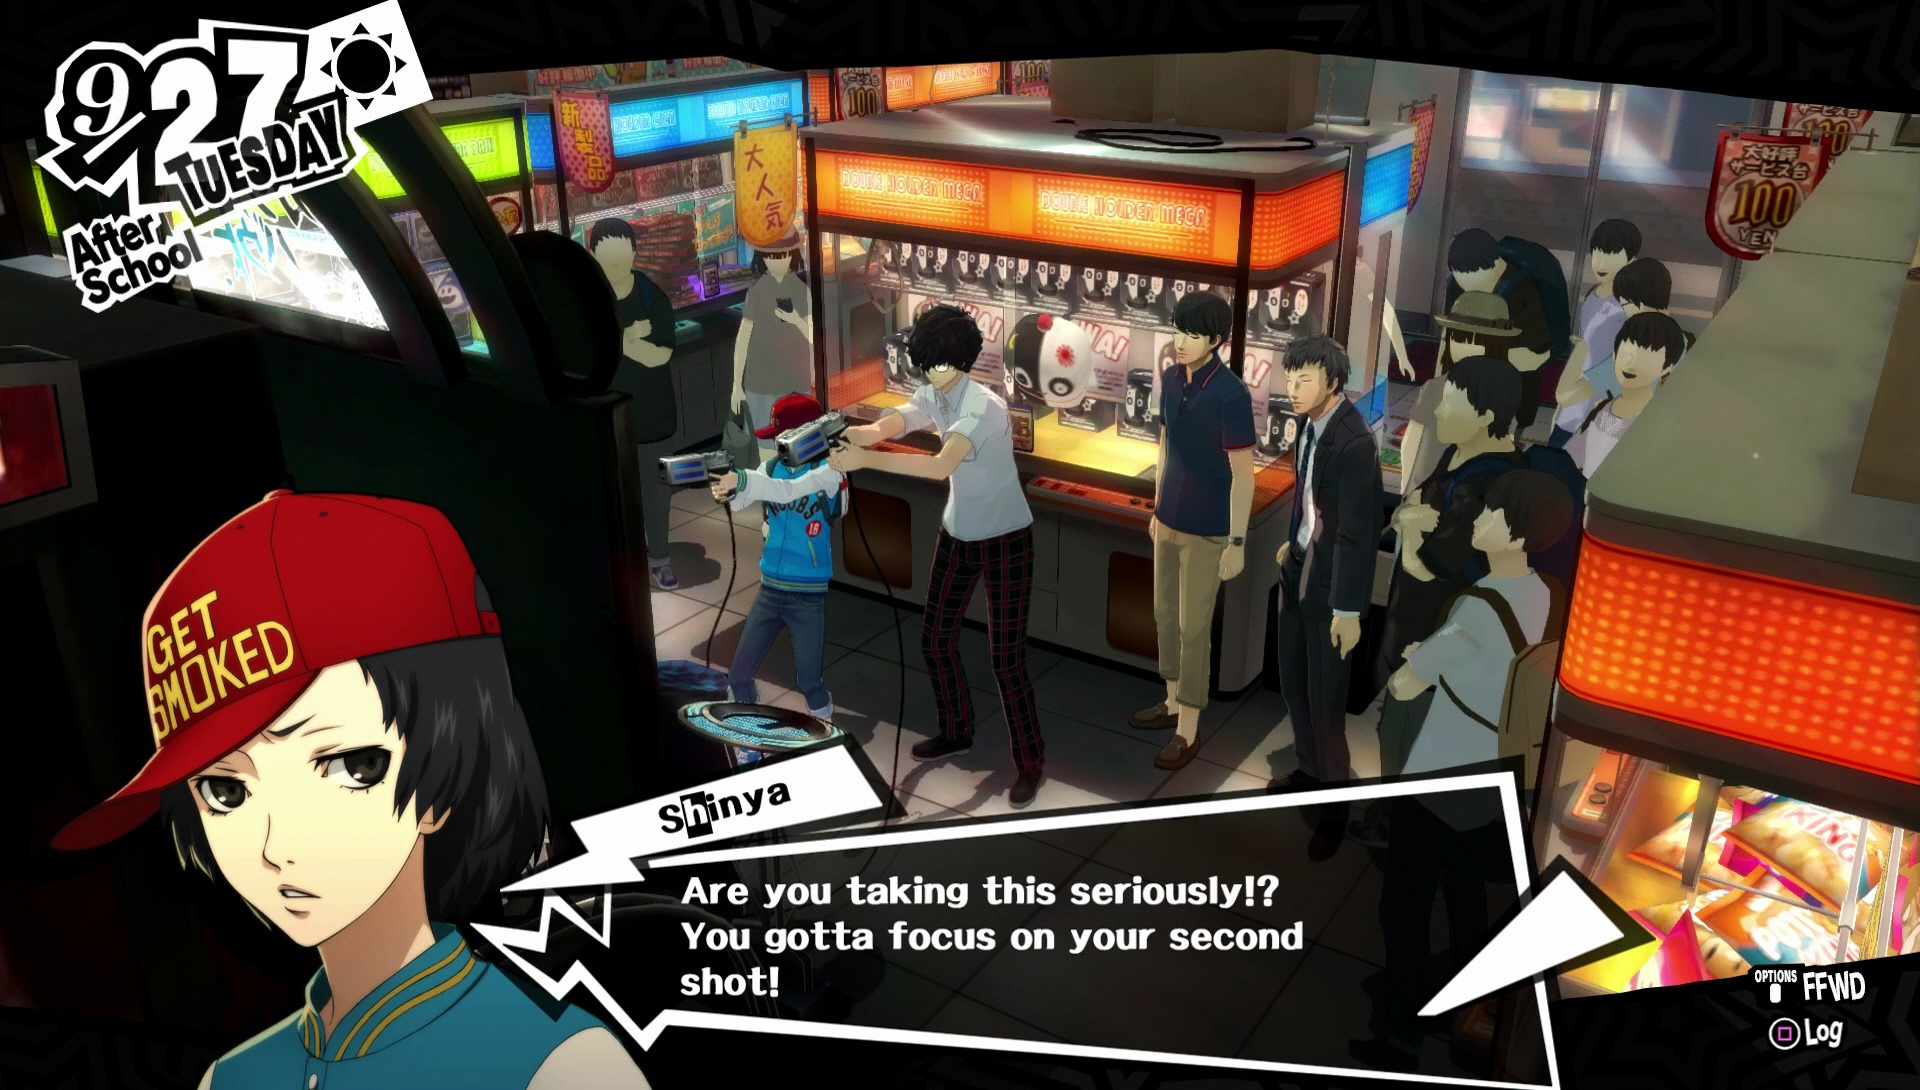 Cute Little Girl Playing Bubble Wallpaper Persona 5 Introduces Another Four Confidants Capsule